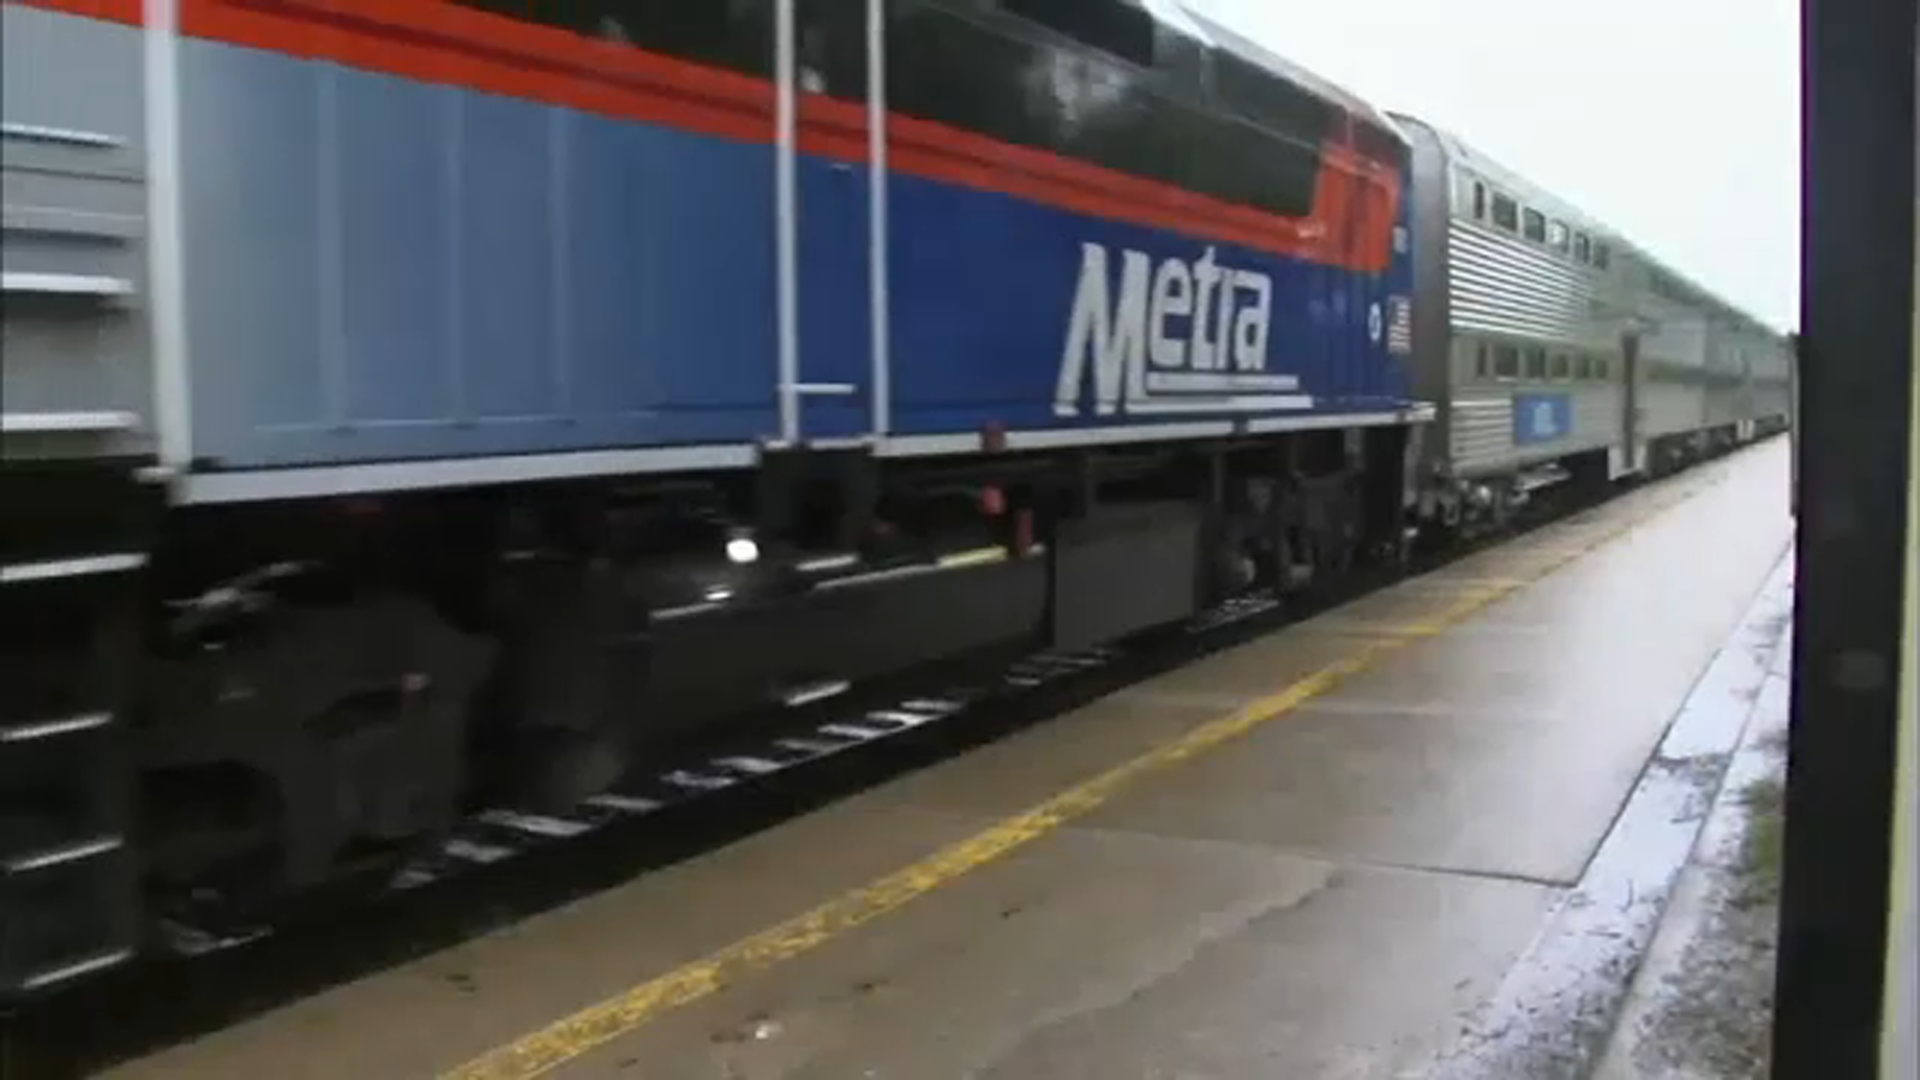 Riders vented about poor service on Metras busiest line Monday night in Western Springs.